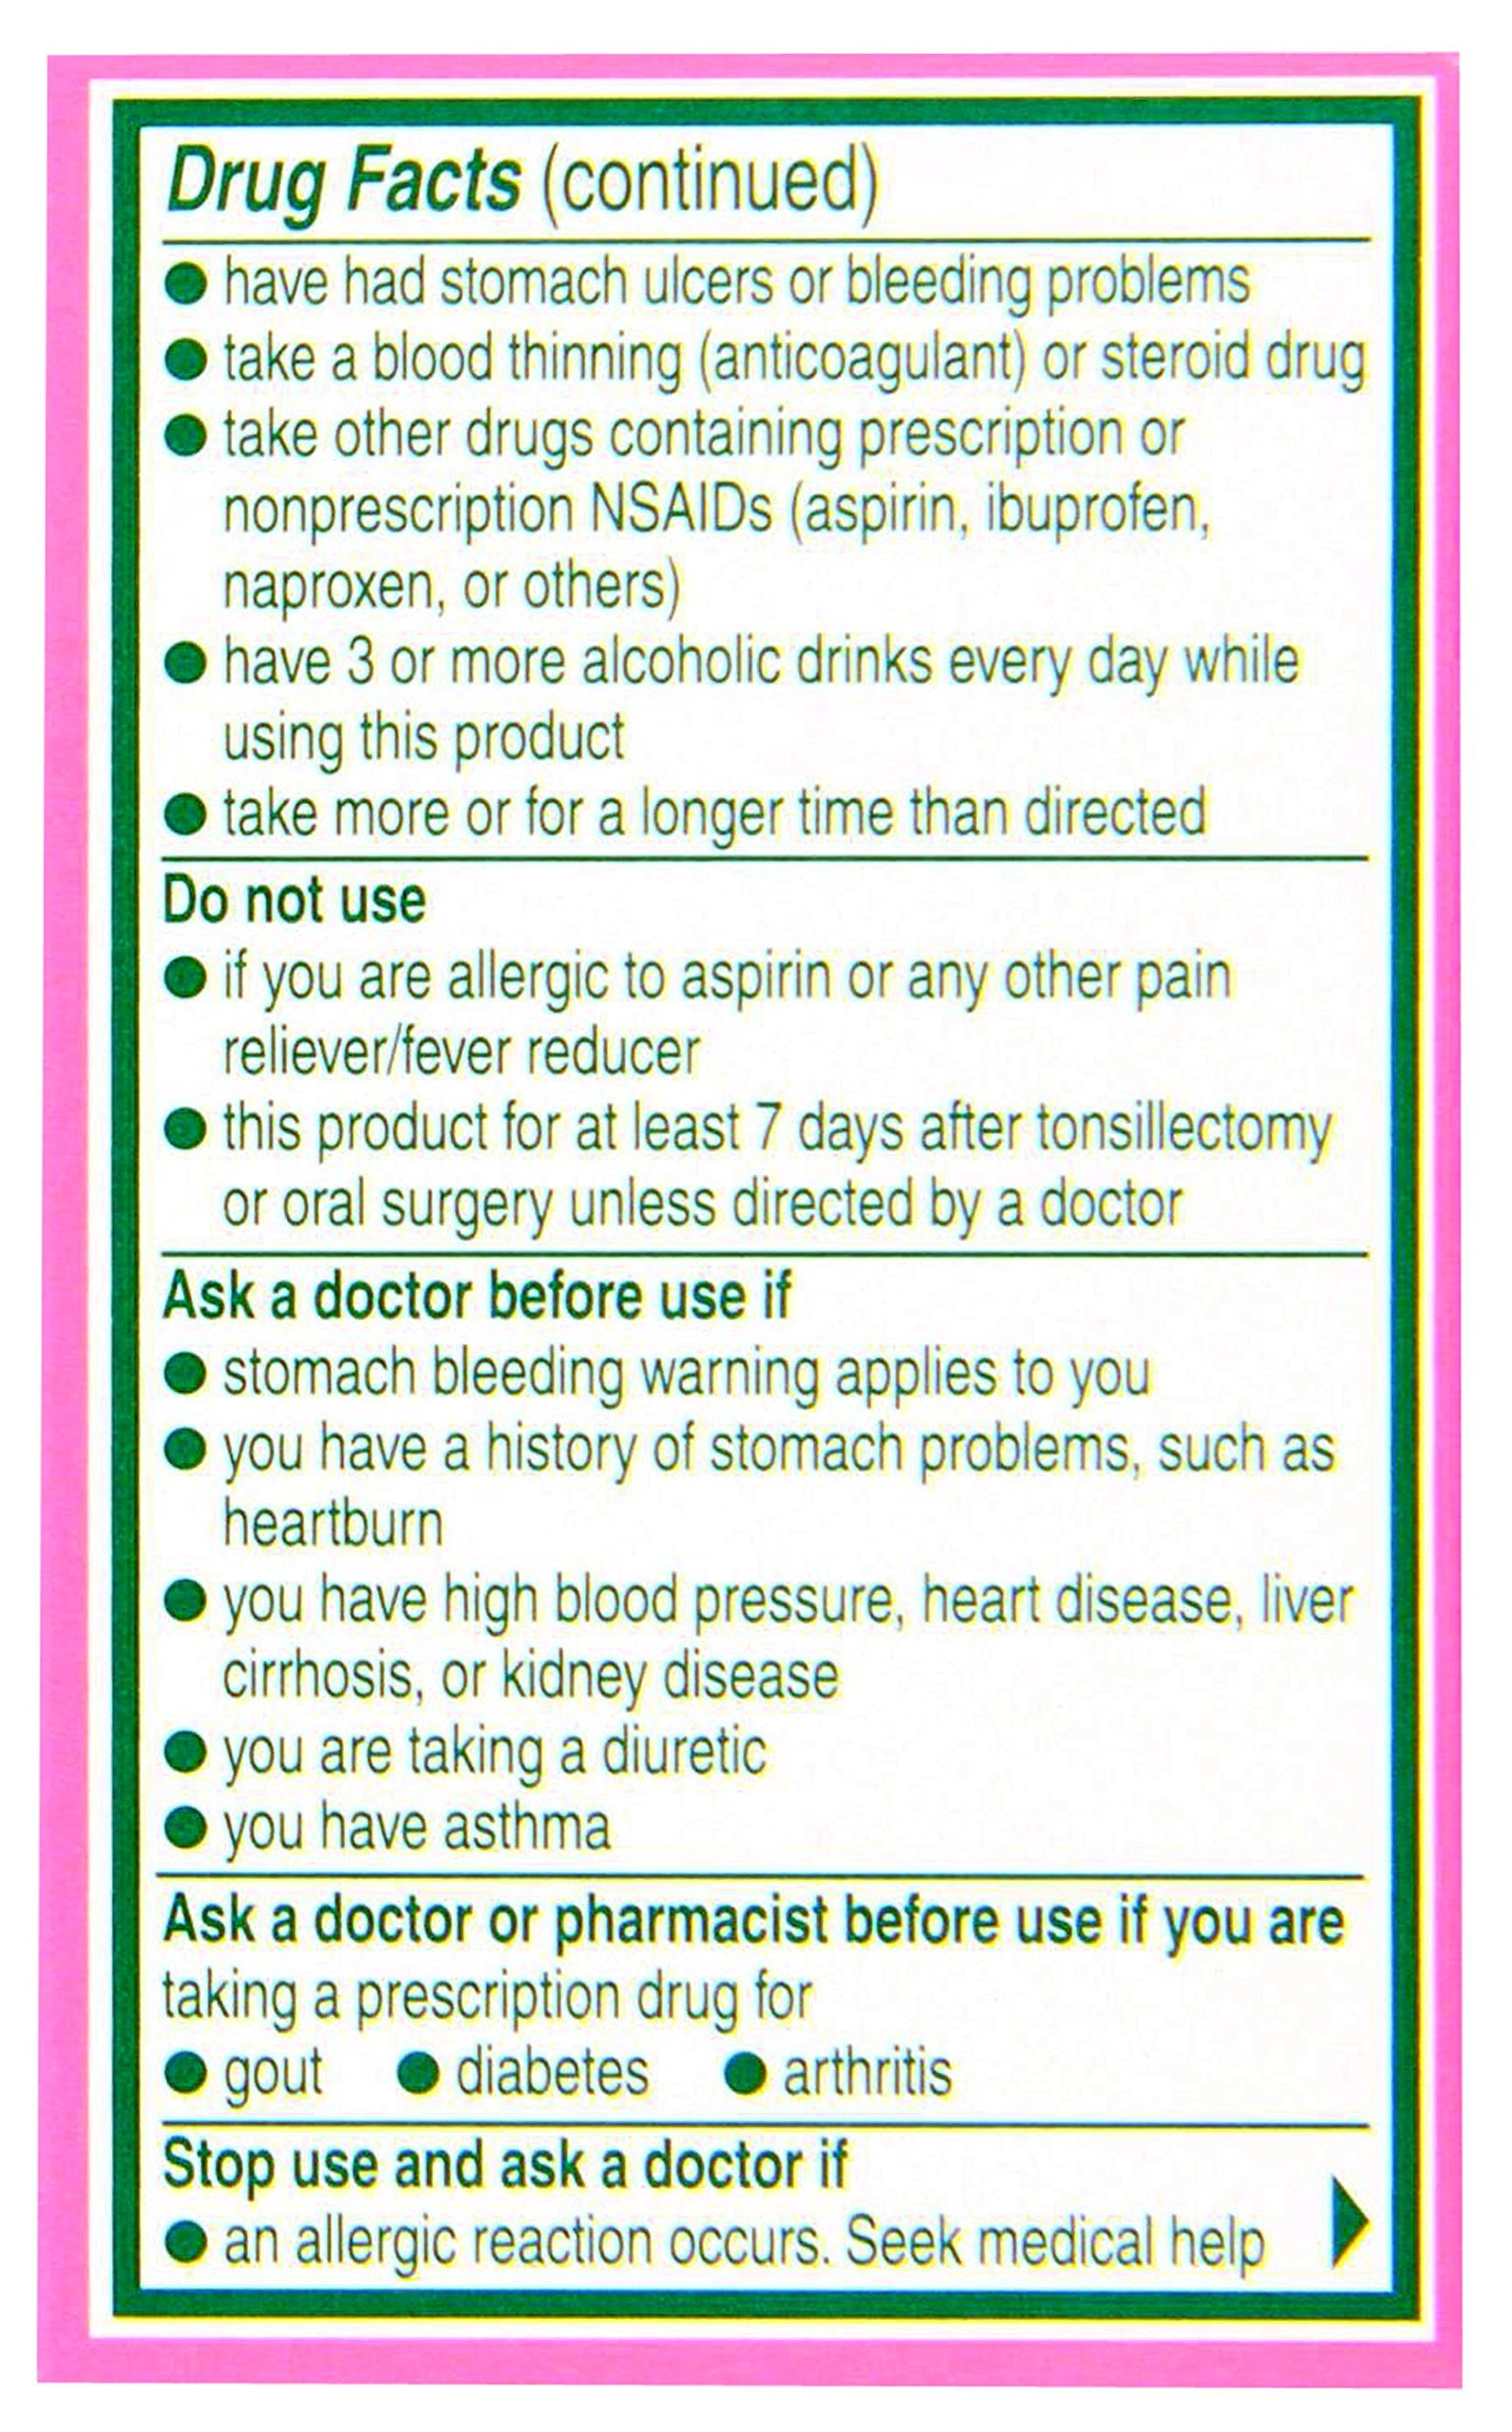 (4 Pack) Bayer Chewable Low Dose Aspirin Cherry- Value Pack, 36-Count Chewable Tablets by Bayer